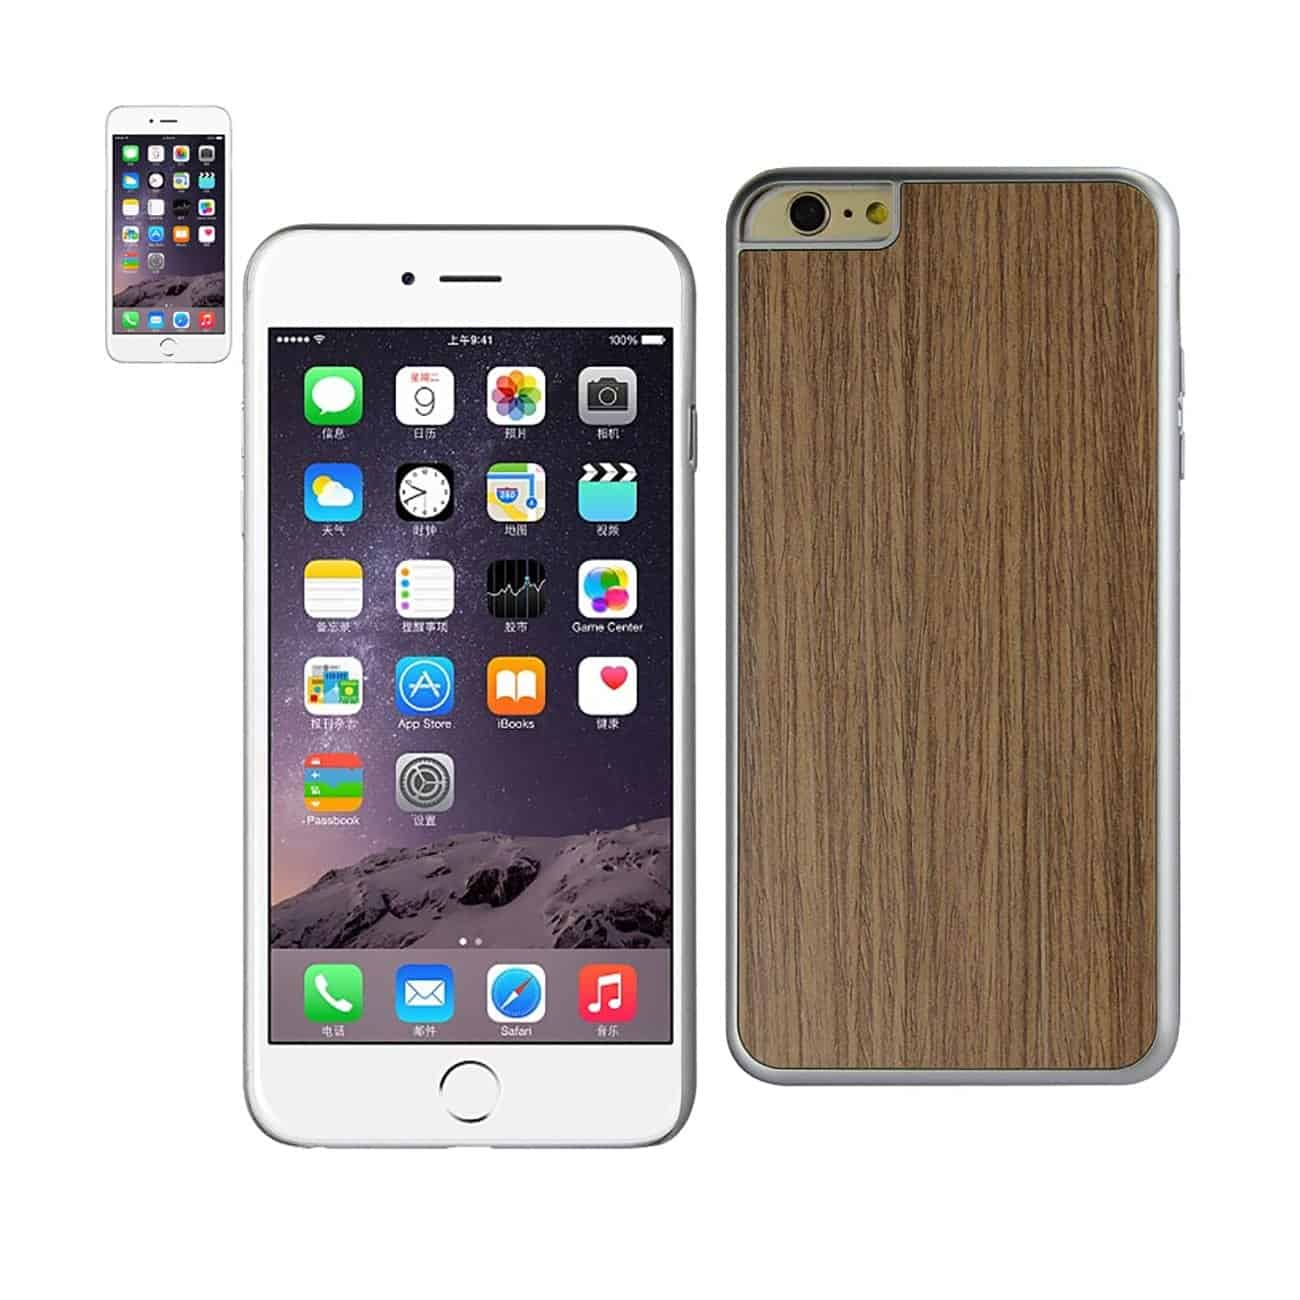 IPHONE 6 PLUS WOOD GRAIN SLIM SNAP ON CASE IN SILVER